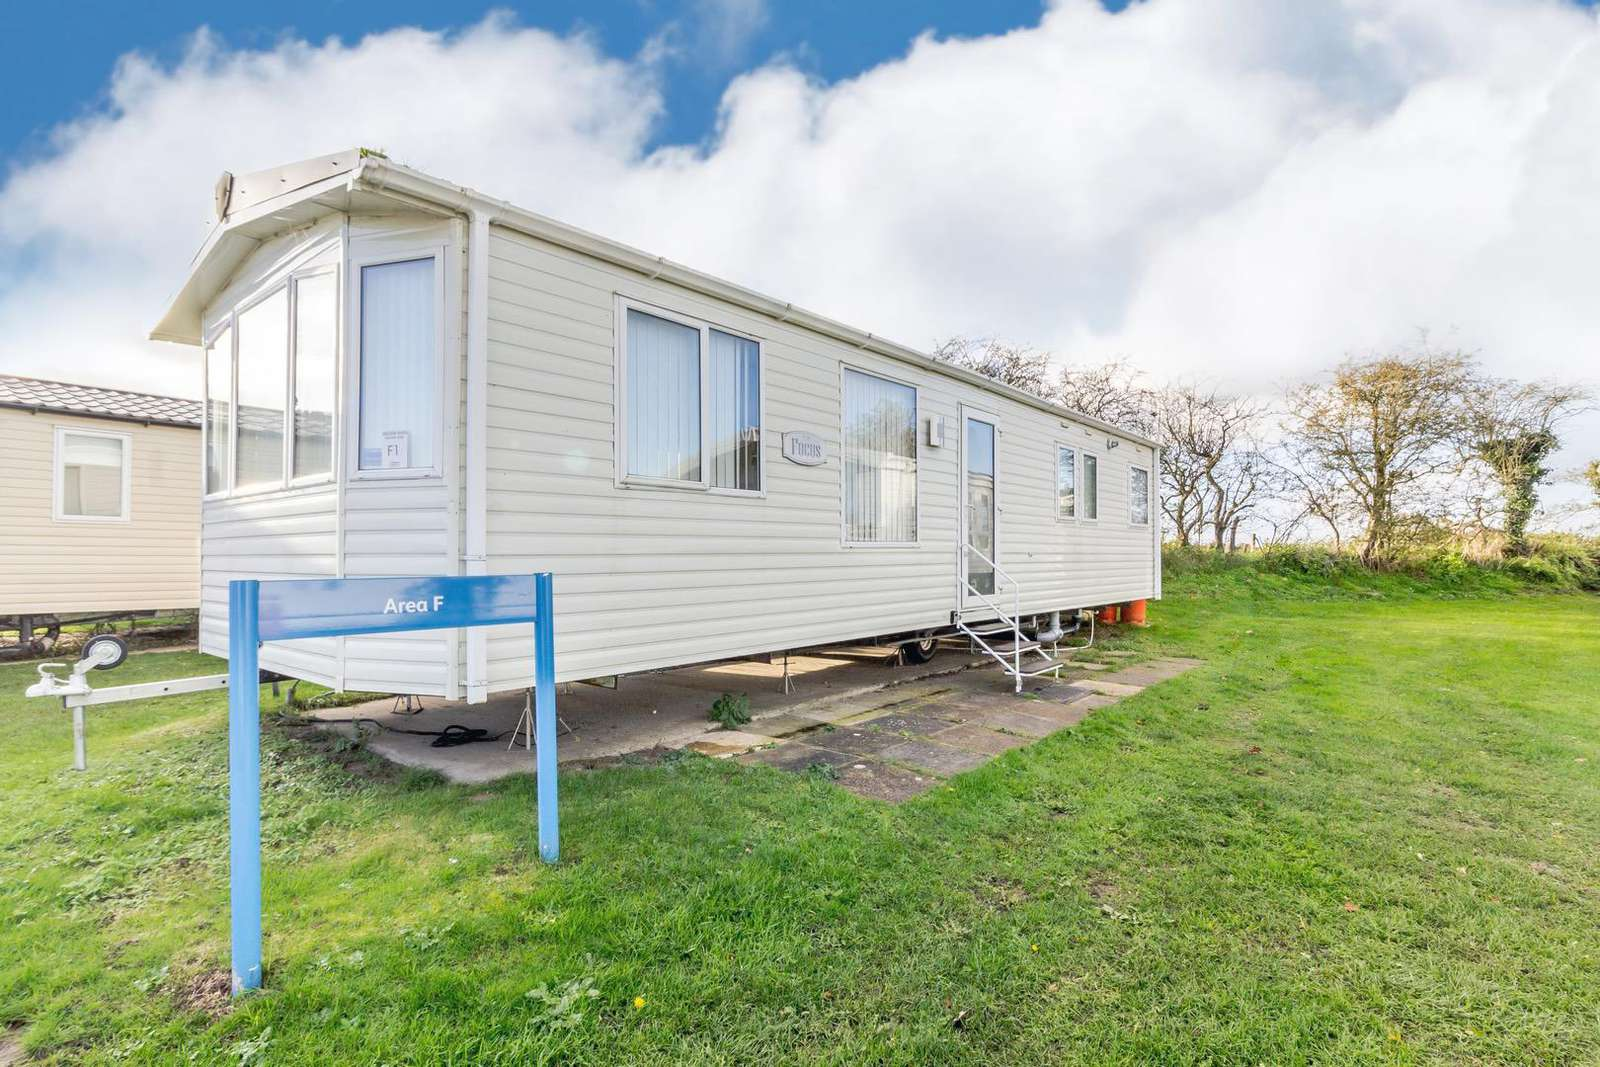 10001F – F area, Yare side, 3 bed, 8 berth caravan. D/G & C/H. Ruby rated. - property